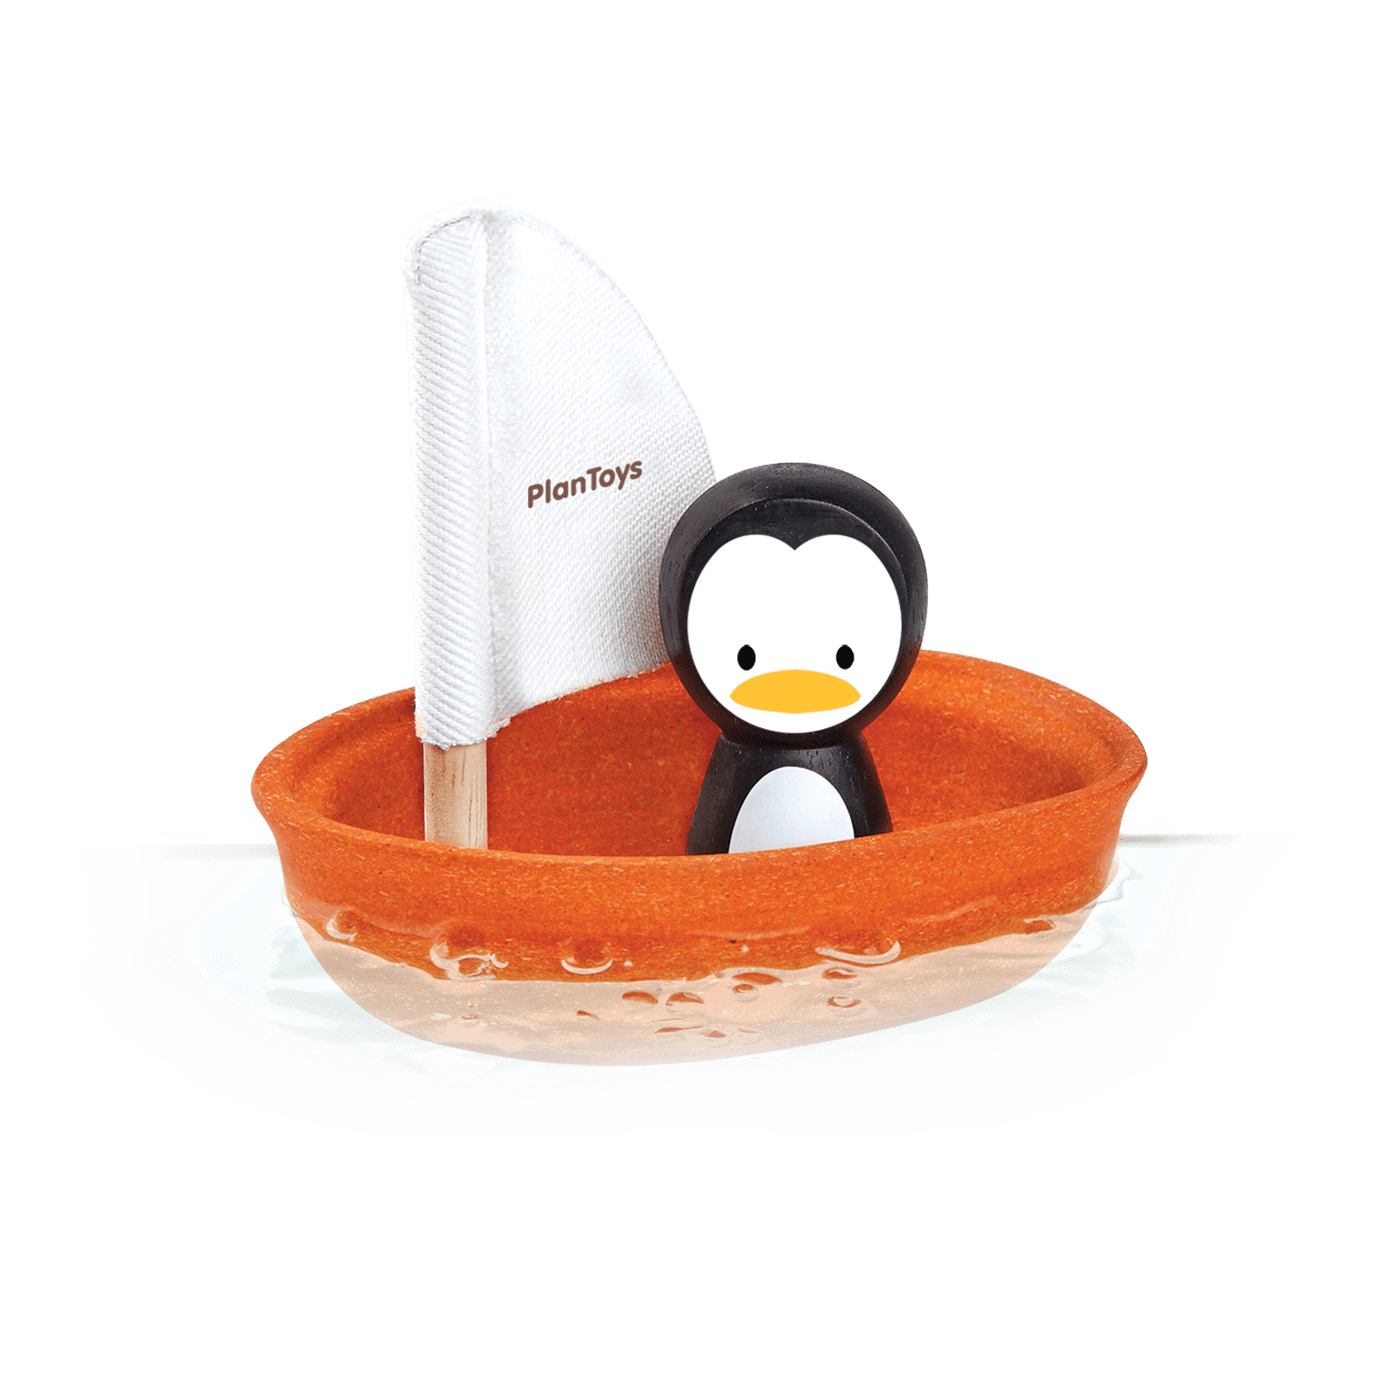 5711_PlanToys_SAILING_BOAT-PENGUIN_Water_Play_Imagination_Language_and_Communications_Explore_Fine_Motor_12m_Wooden_toys_Education_toys_Safety_Toys_Non-toxic_0.png